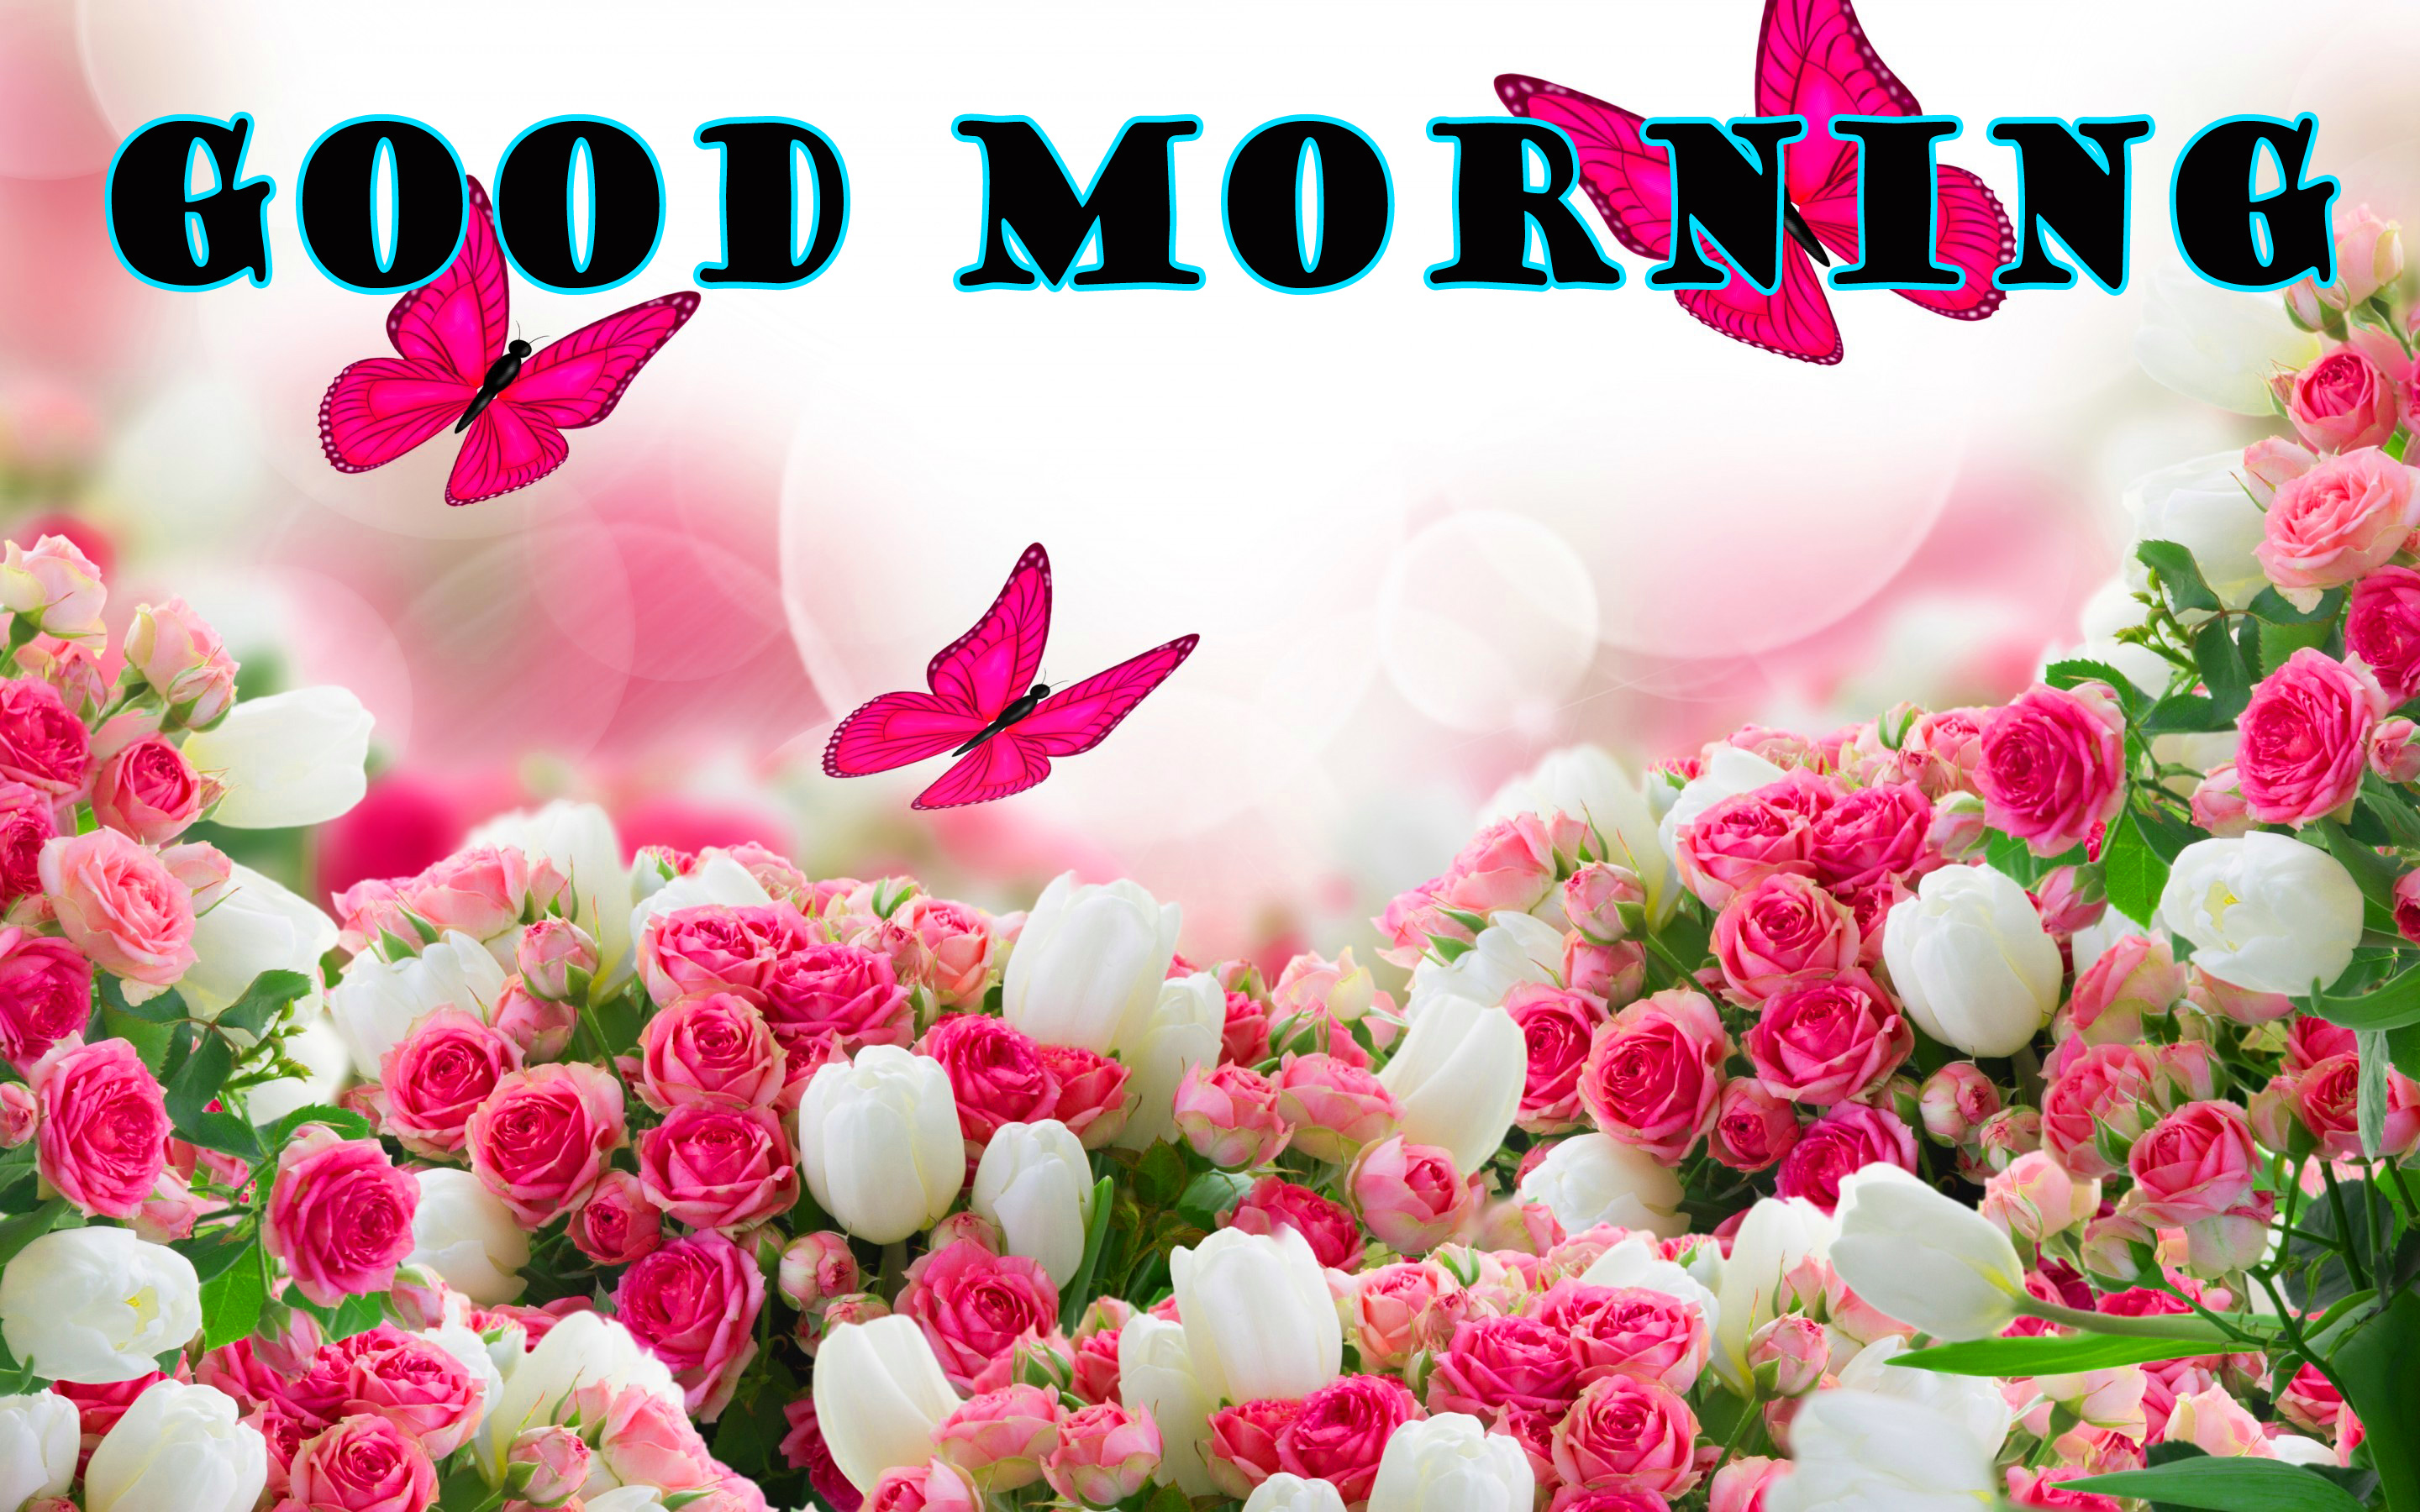 गुड मॉर्निंग New Wonderful Good Morning Wallpaper Pictures Photo HD